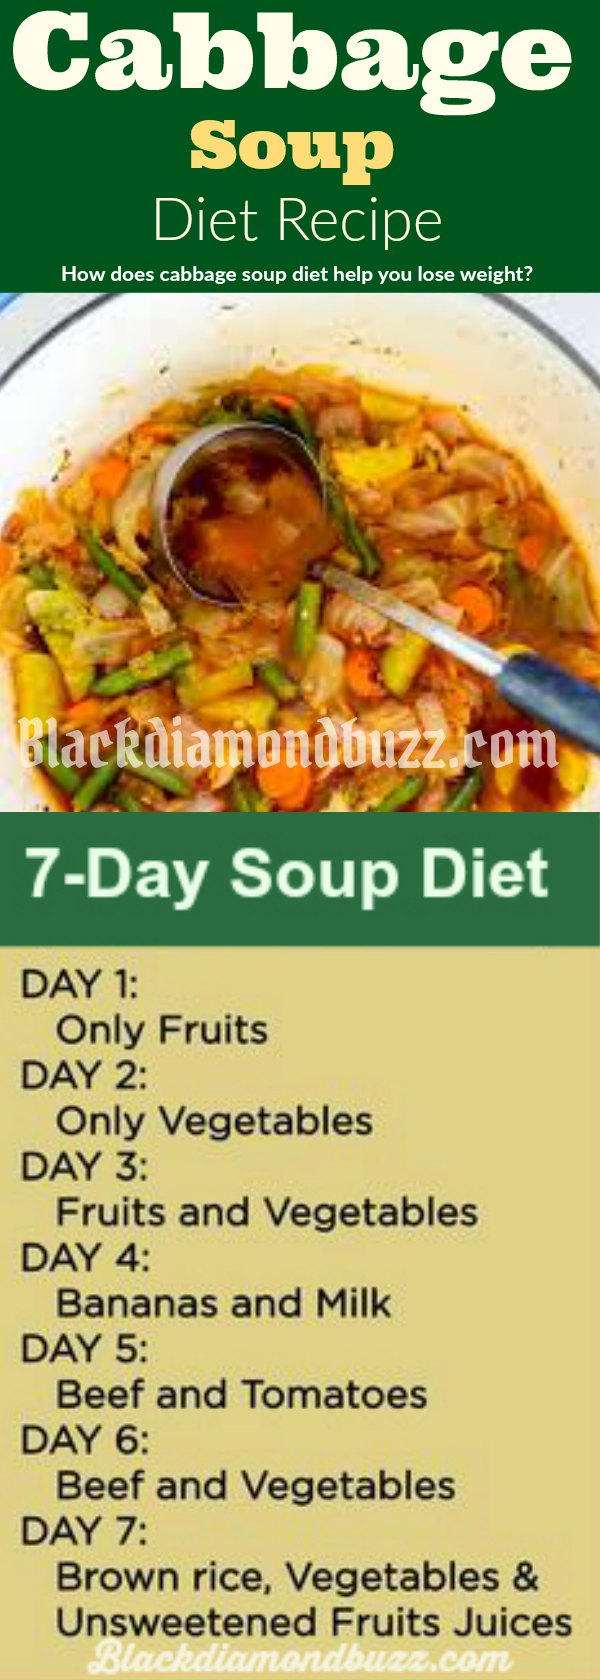 Best Cabbage Soup Diet Recipe for Weight Loss - Lose 10 ...